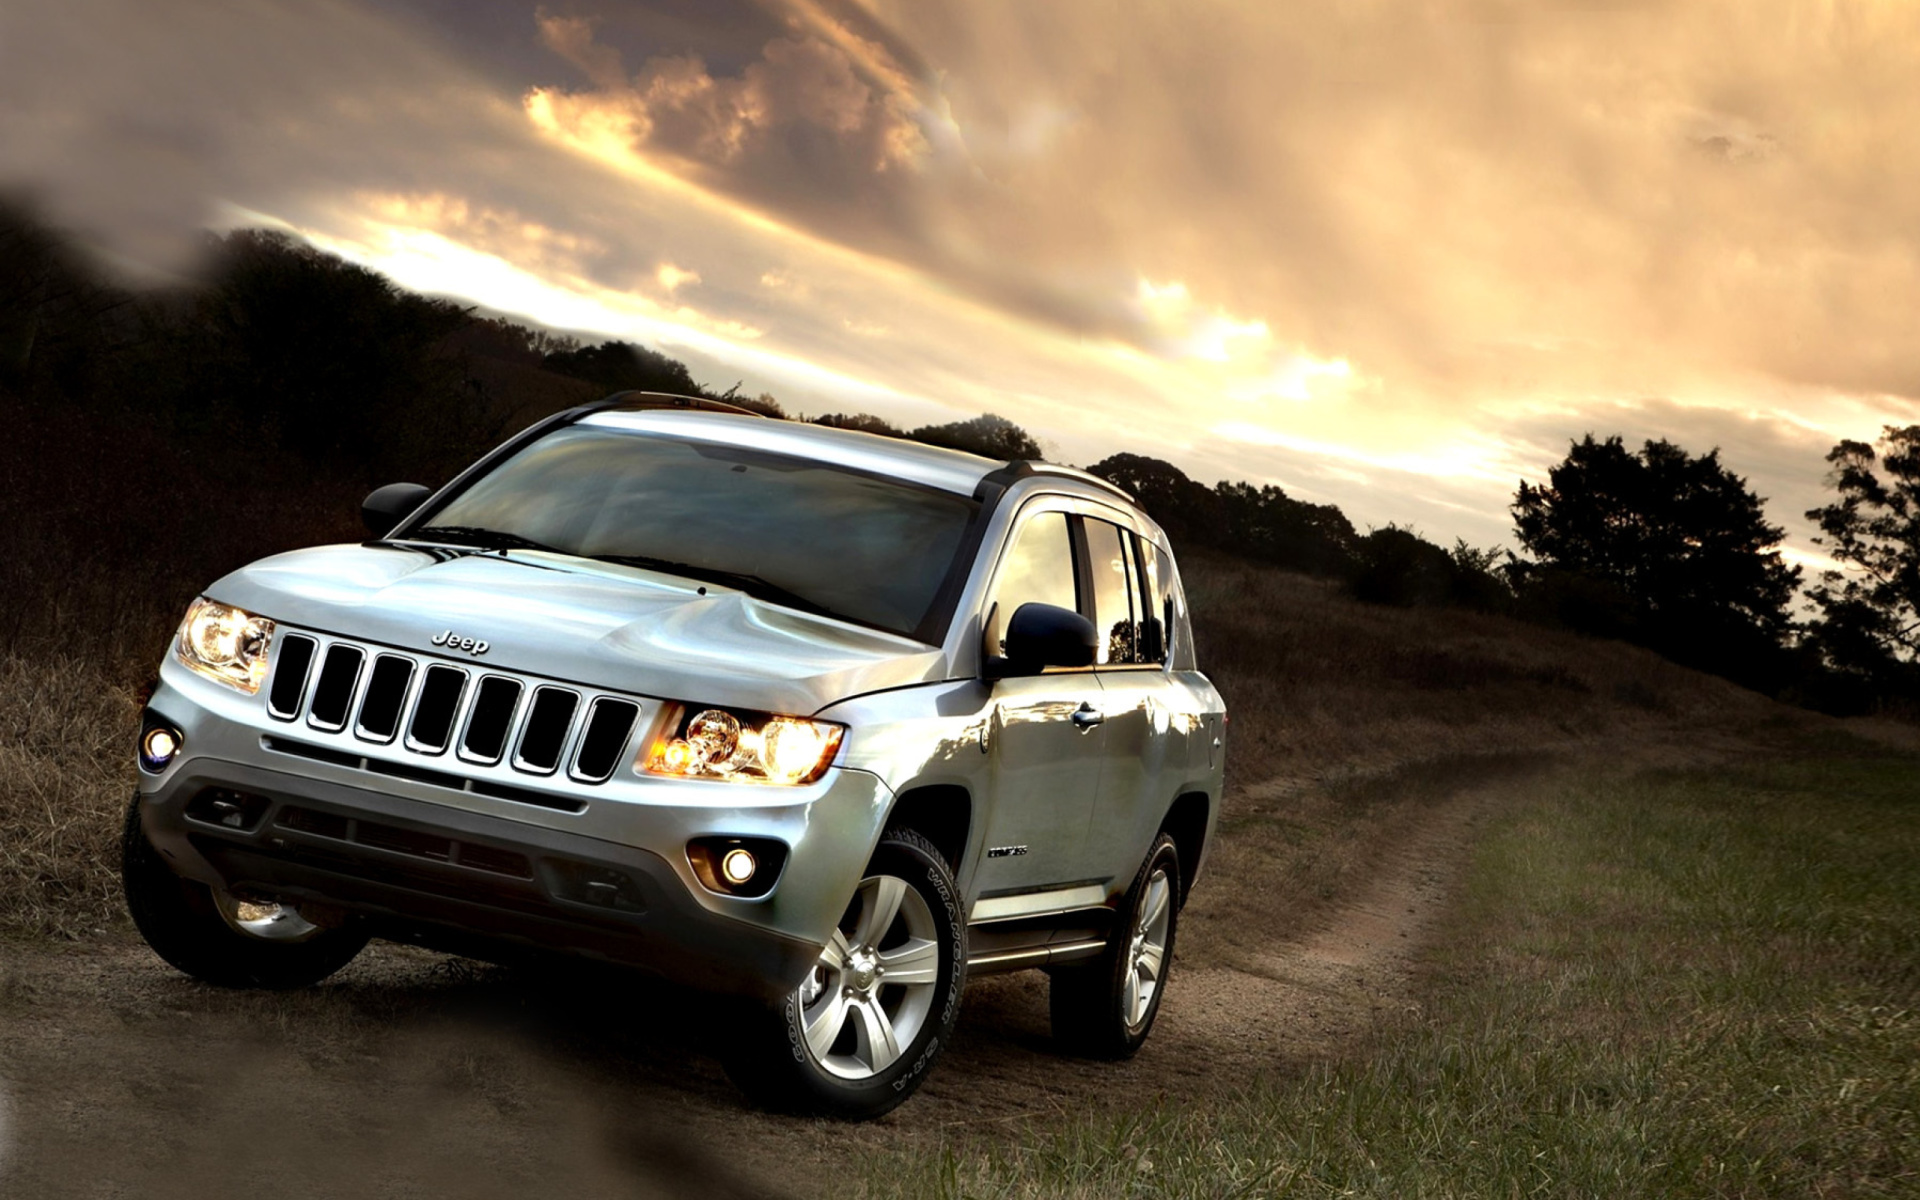 Jeep Compass Suv Wallpaper For Widescreen Desktop Pc Jeep Compass Full Hd 1777278 Hd Wallpaper Backgrounds Download